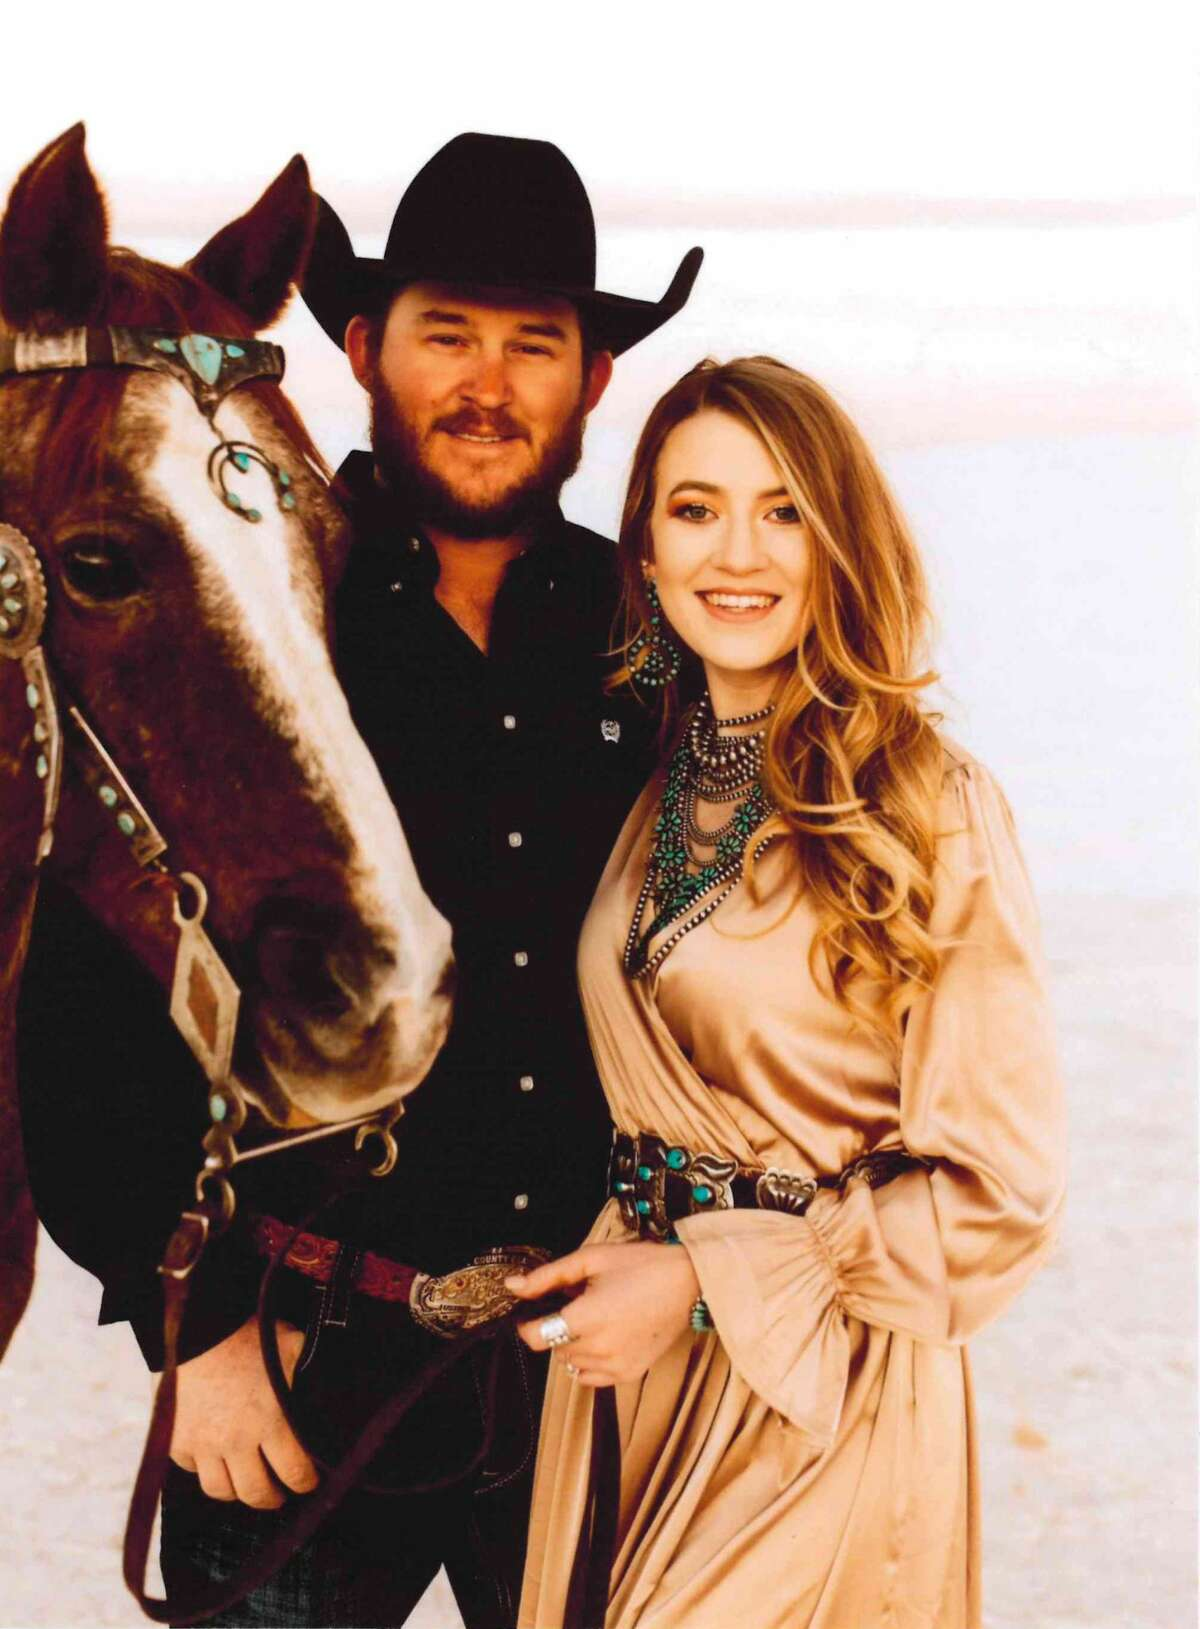 Cort Ayler Smith will wed Colti ShyAnn Wright on Sept. 25, 2021 in Caballo, New Mexico.